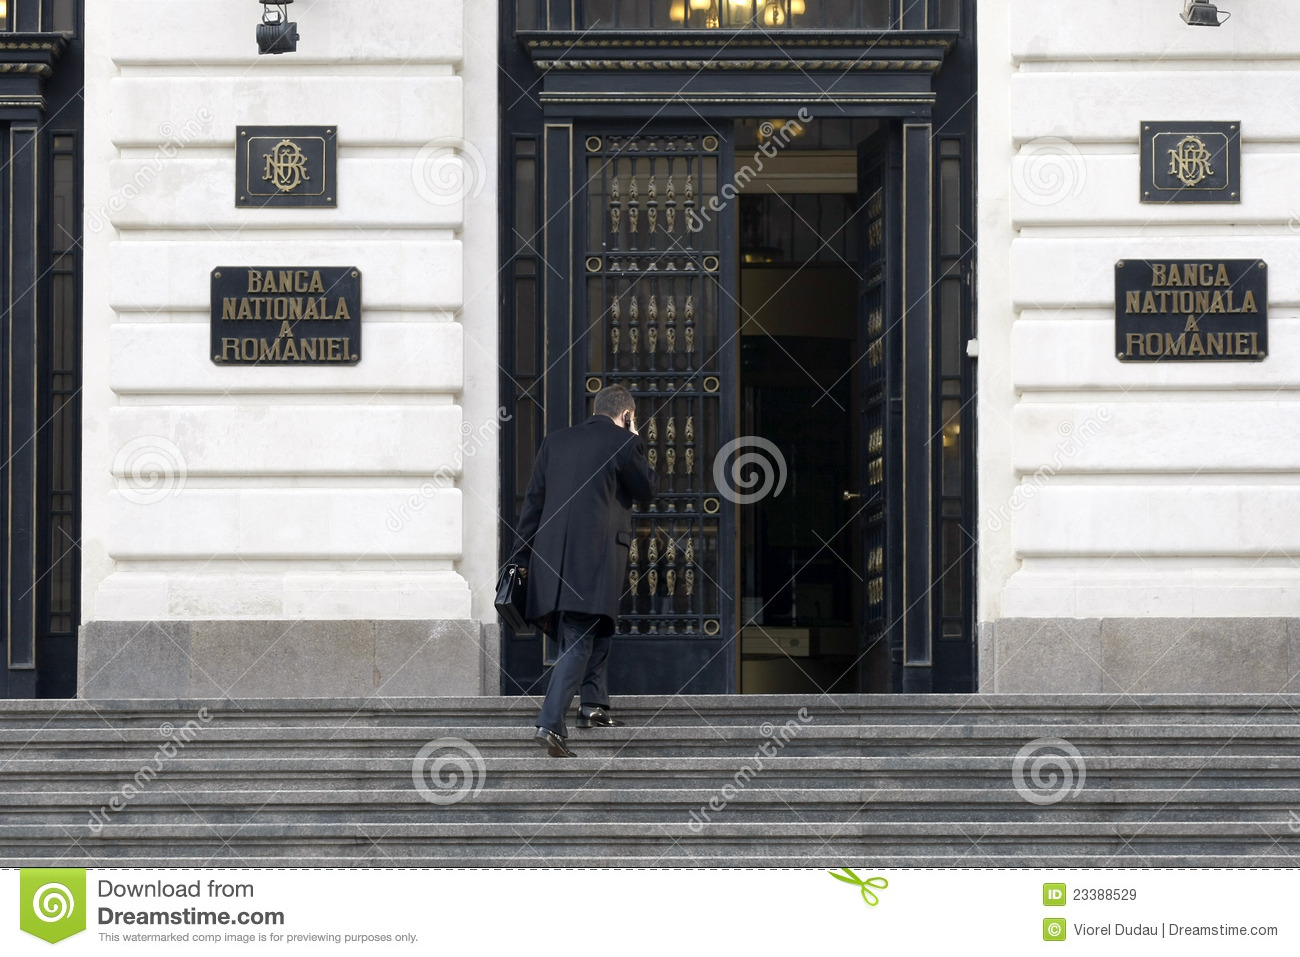 Download BNR - Romanian National Bank Editorial Stock Image - Image of nationala, loans: 23388529